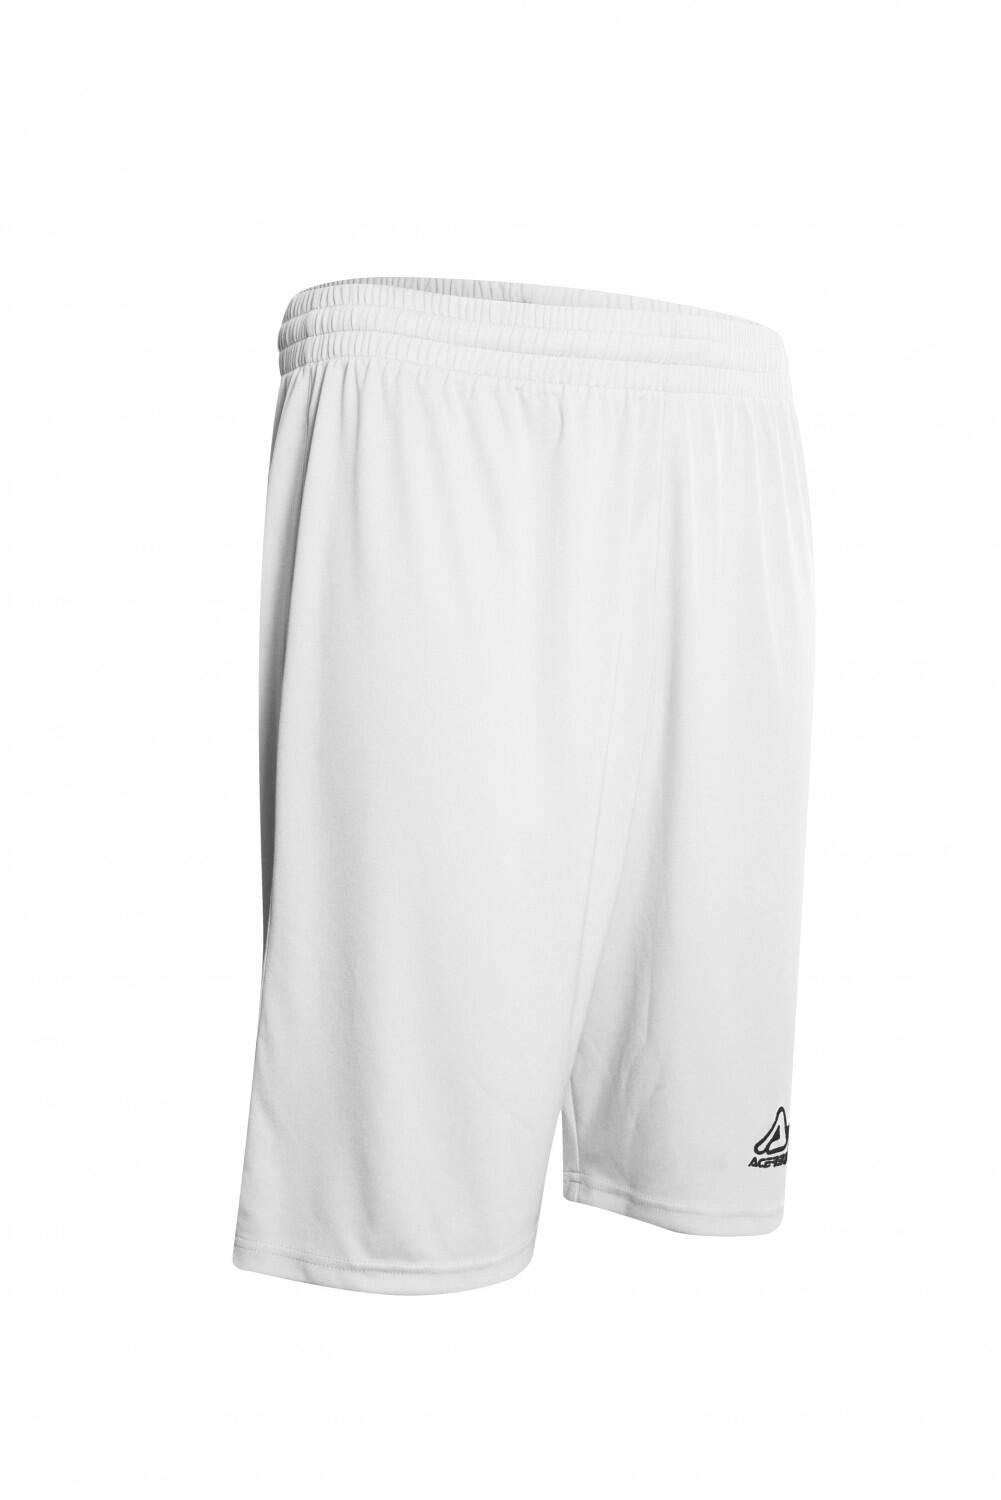 Basketball Shorts Magic  v. Acerbis , weiß , 4XS-4XL